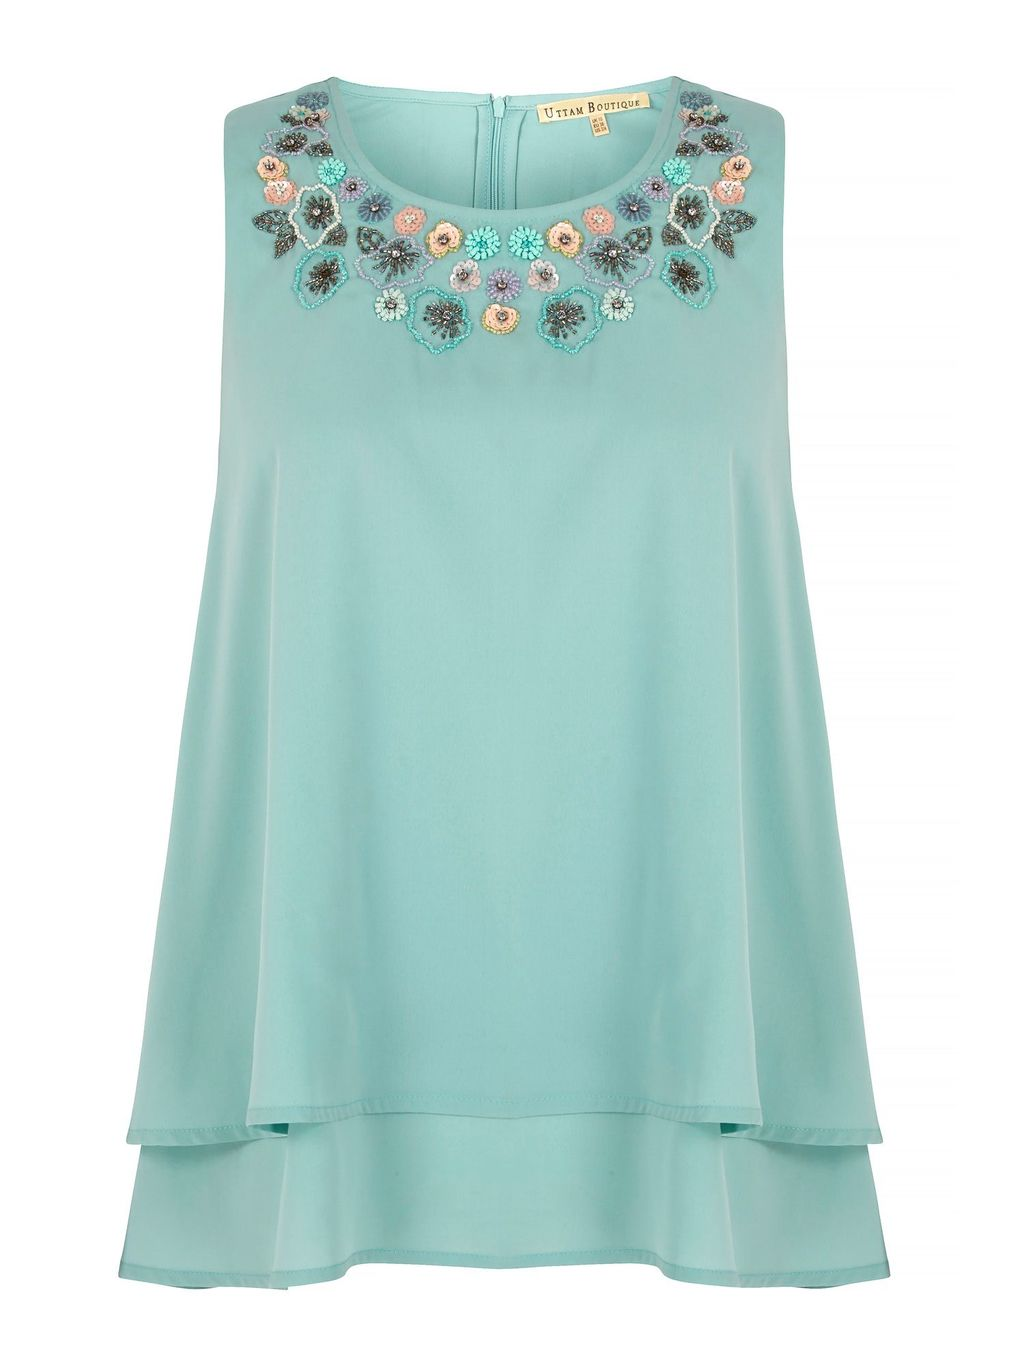 Embellished Swing Top, Blue - neckline: round neck; pattern: plain; sleeve style: sleeveless; predominant colour: pale blue; secondary colour: dark green; occasions: evening; length: standard; style: top; fibres: polyester/polyamide - 100%; fit: loose; sleeve length: sleeveless; texture group: crepes; pattern type: fabric; embellishment: applique; season: s/s 2016; wardrobe: event; embellishment location: neck